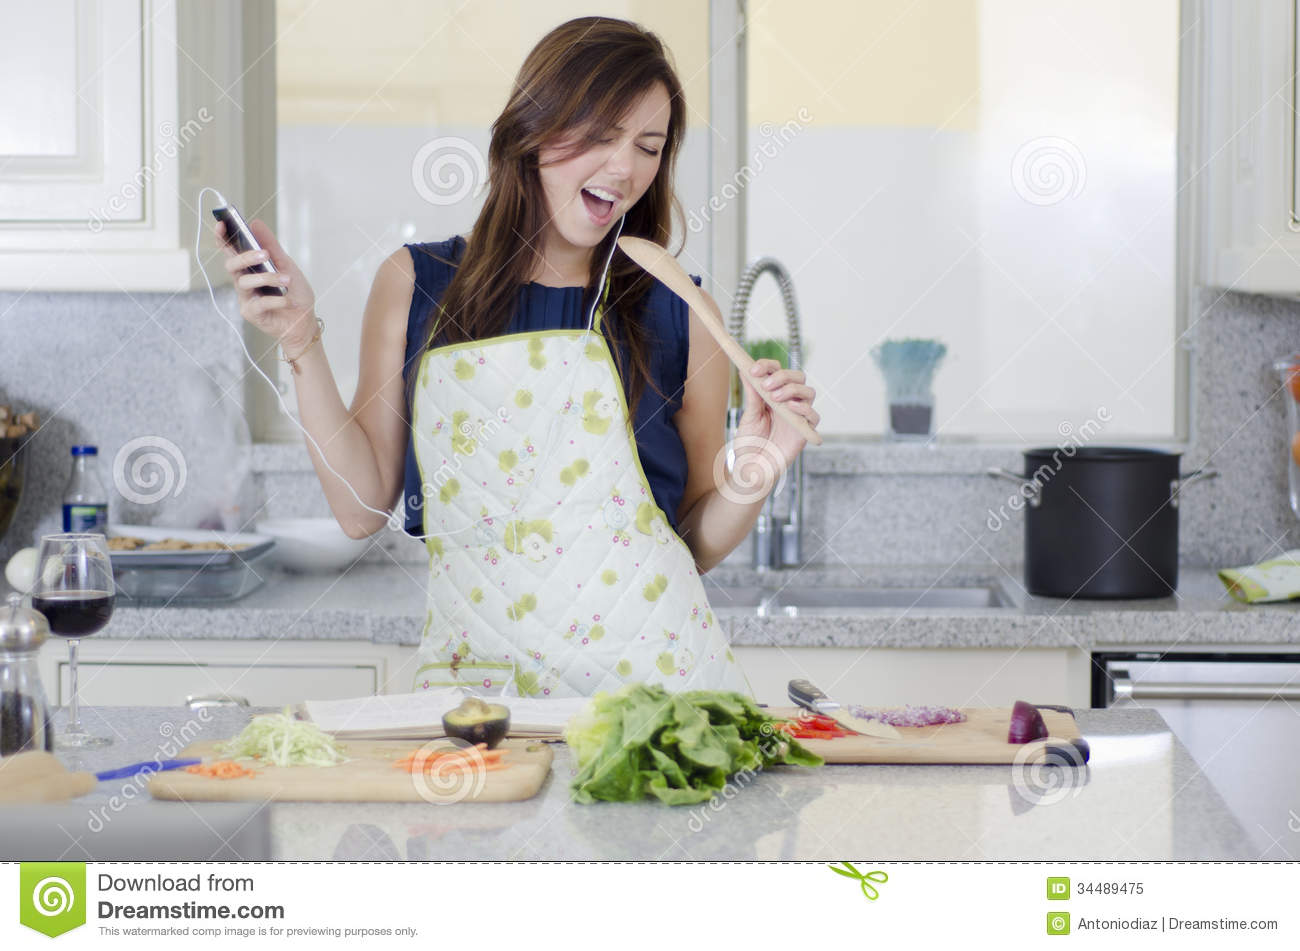 Fun Kitchen Having Fun In The Kitchen Royalty Free Stock Photo Image 34489475